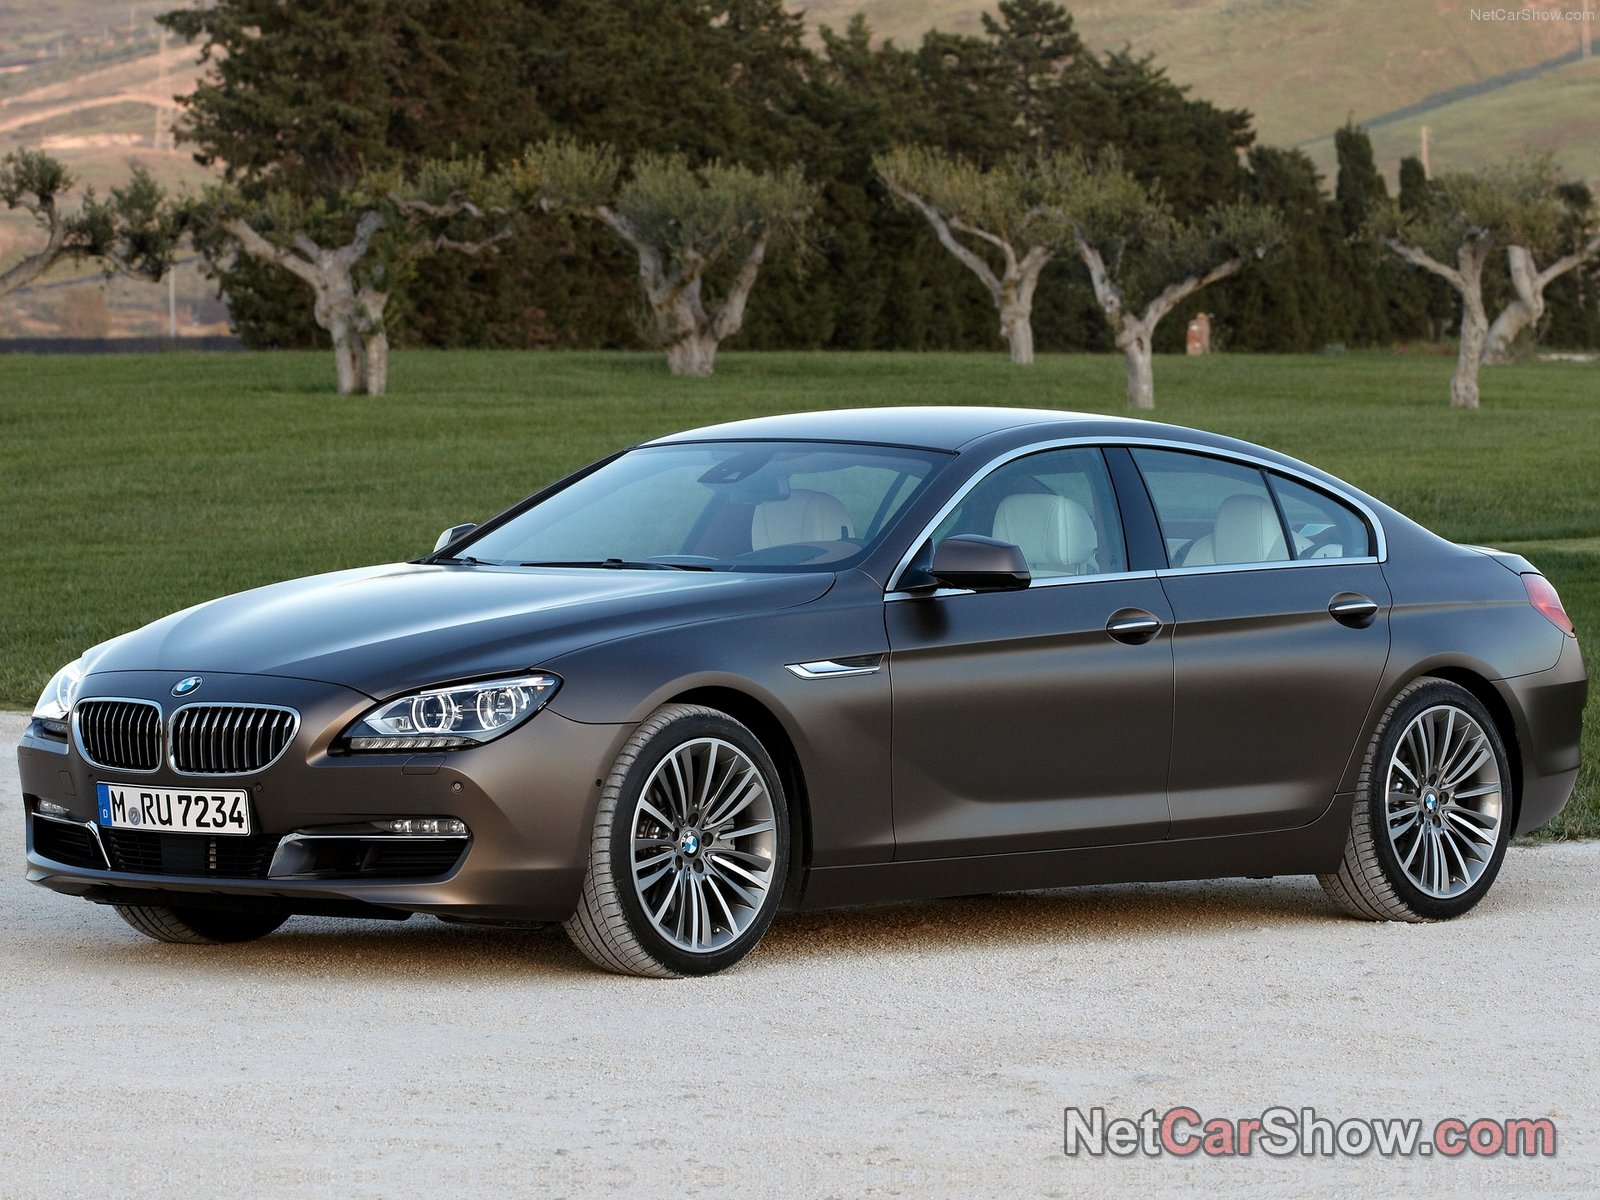 bmw 6 series gran coupe photos photo gallery page 7. Black Bedroom Furniture Sets. Home Design Ideas